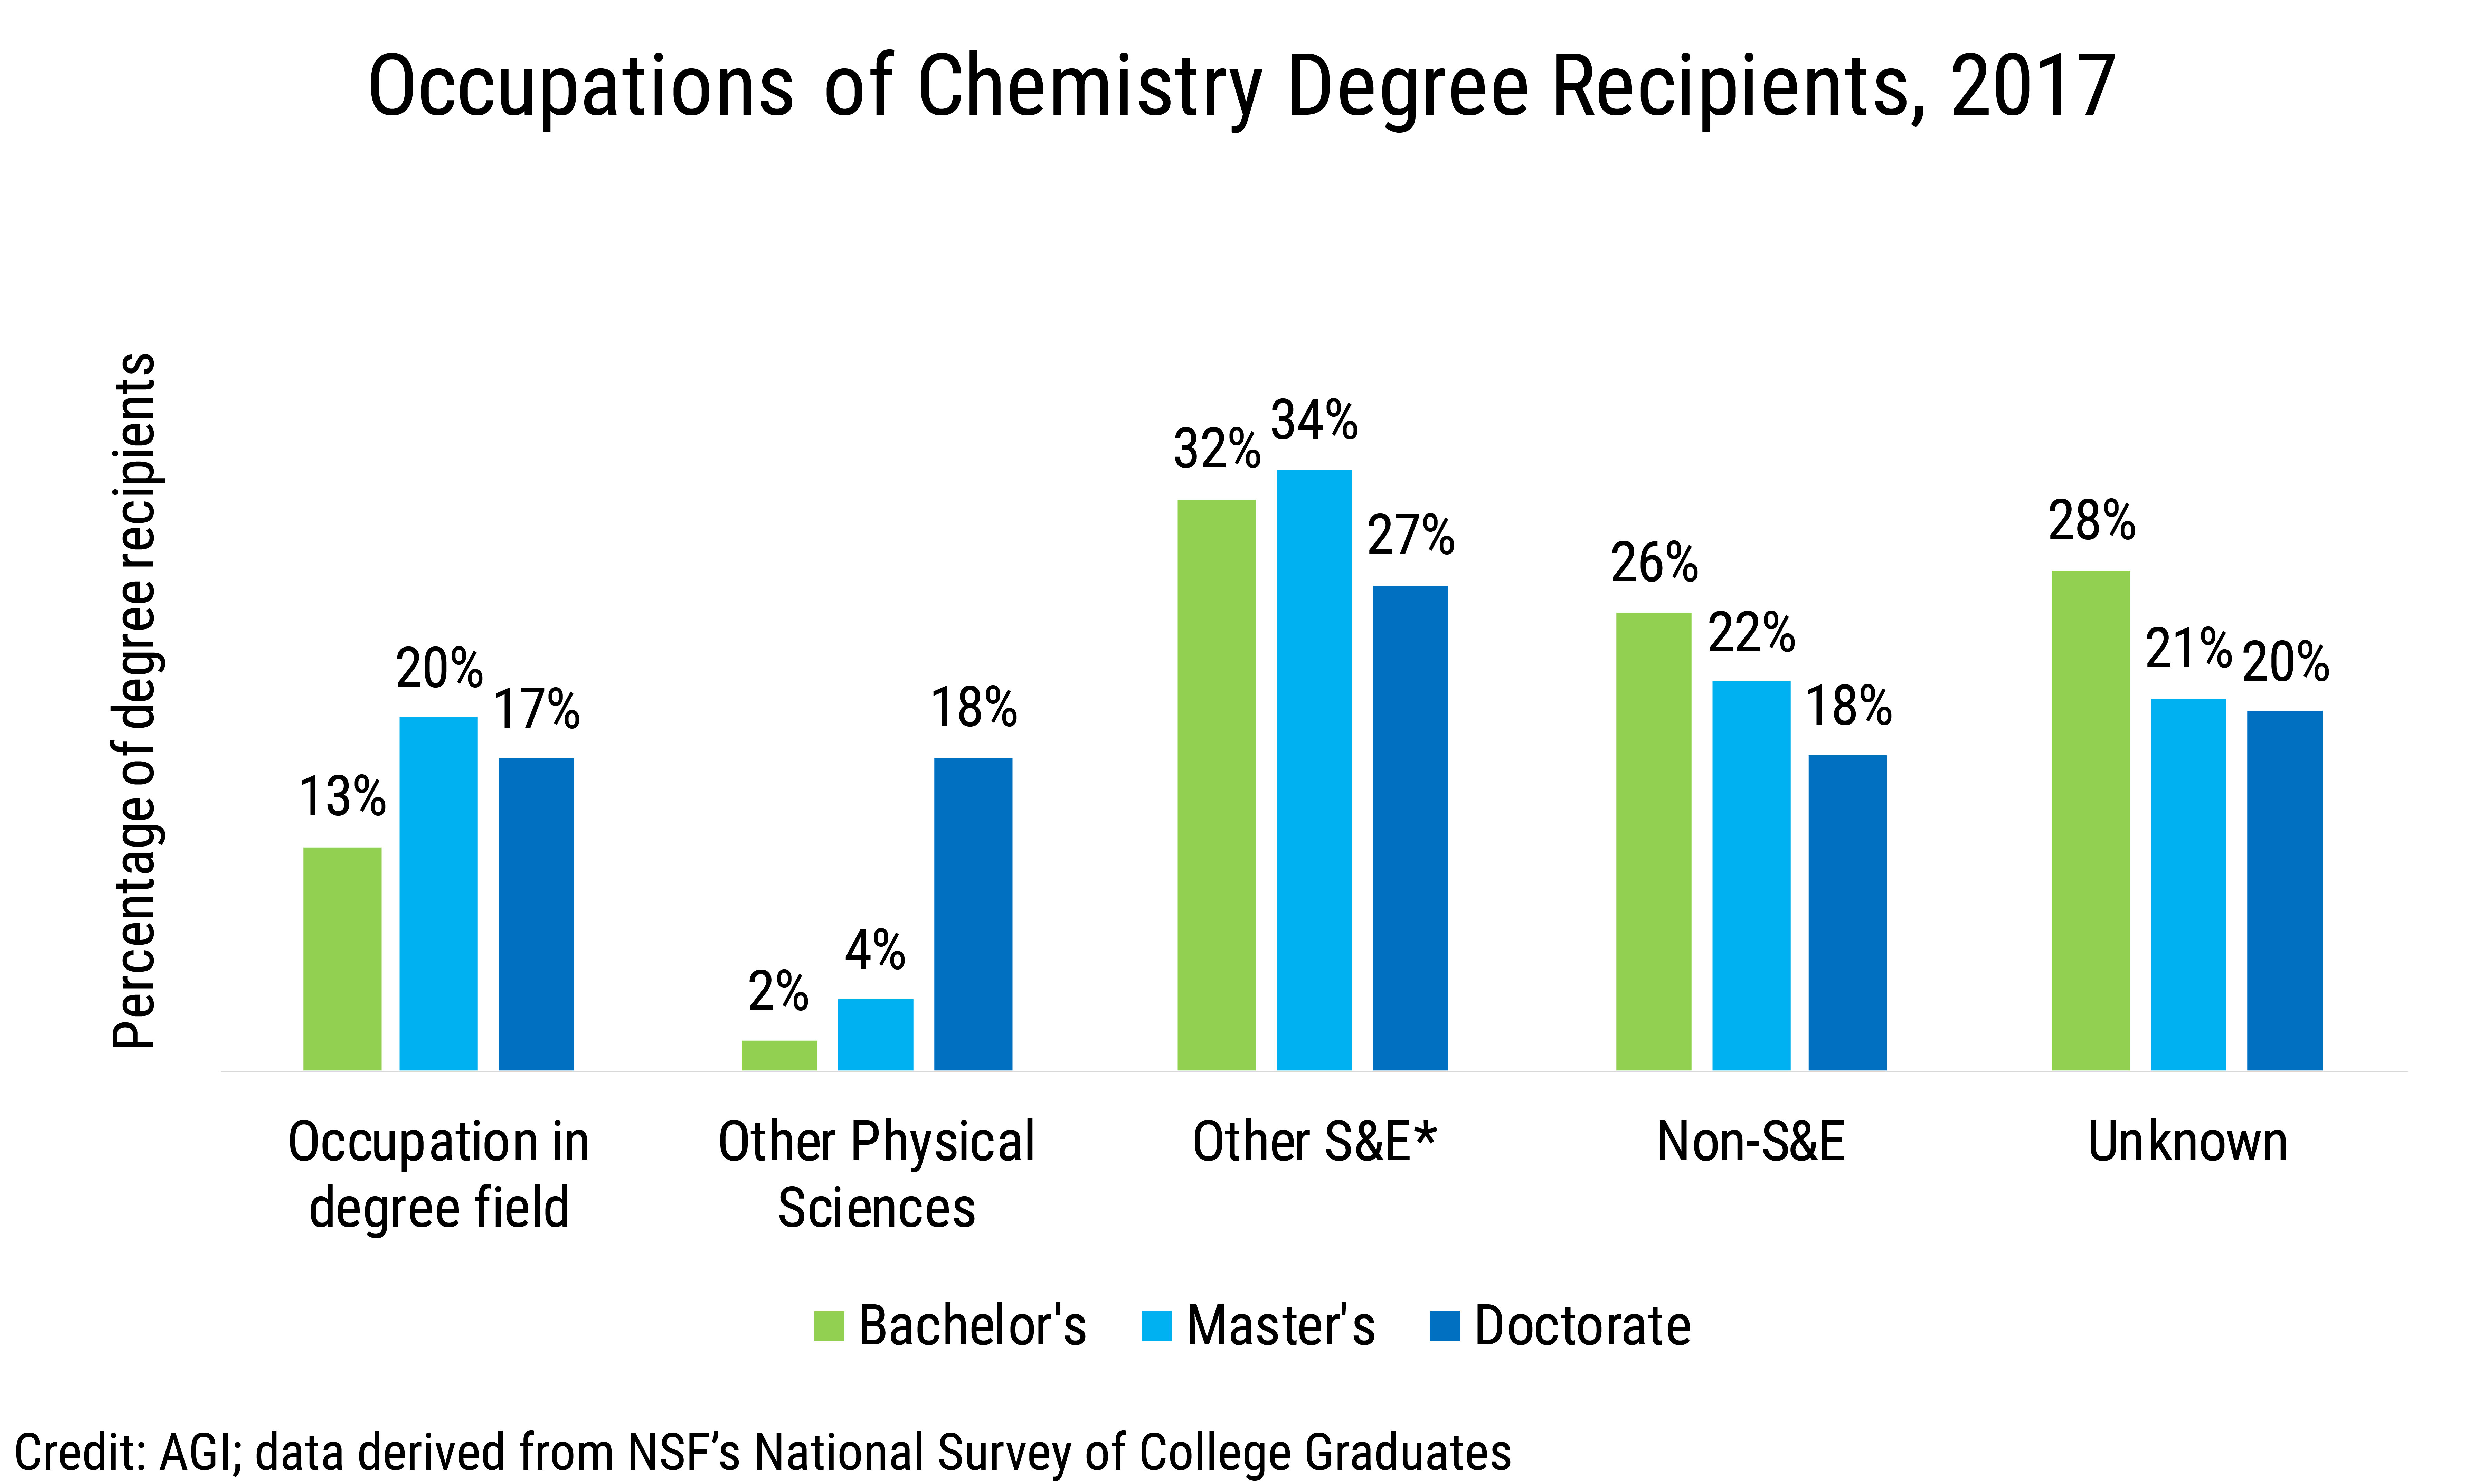 Data Brief 2019-013 chart02: Occupations of Chemistry Degree Recipients, 2017 (credit: AGI; data derived from NSF NSCG)